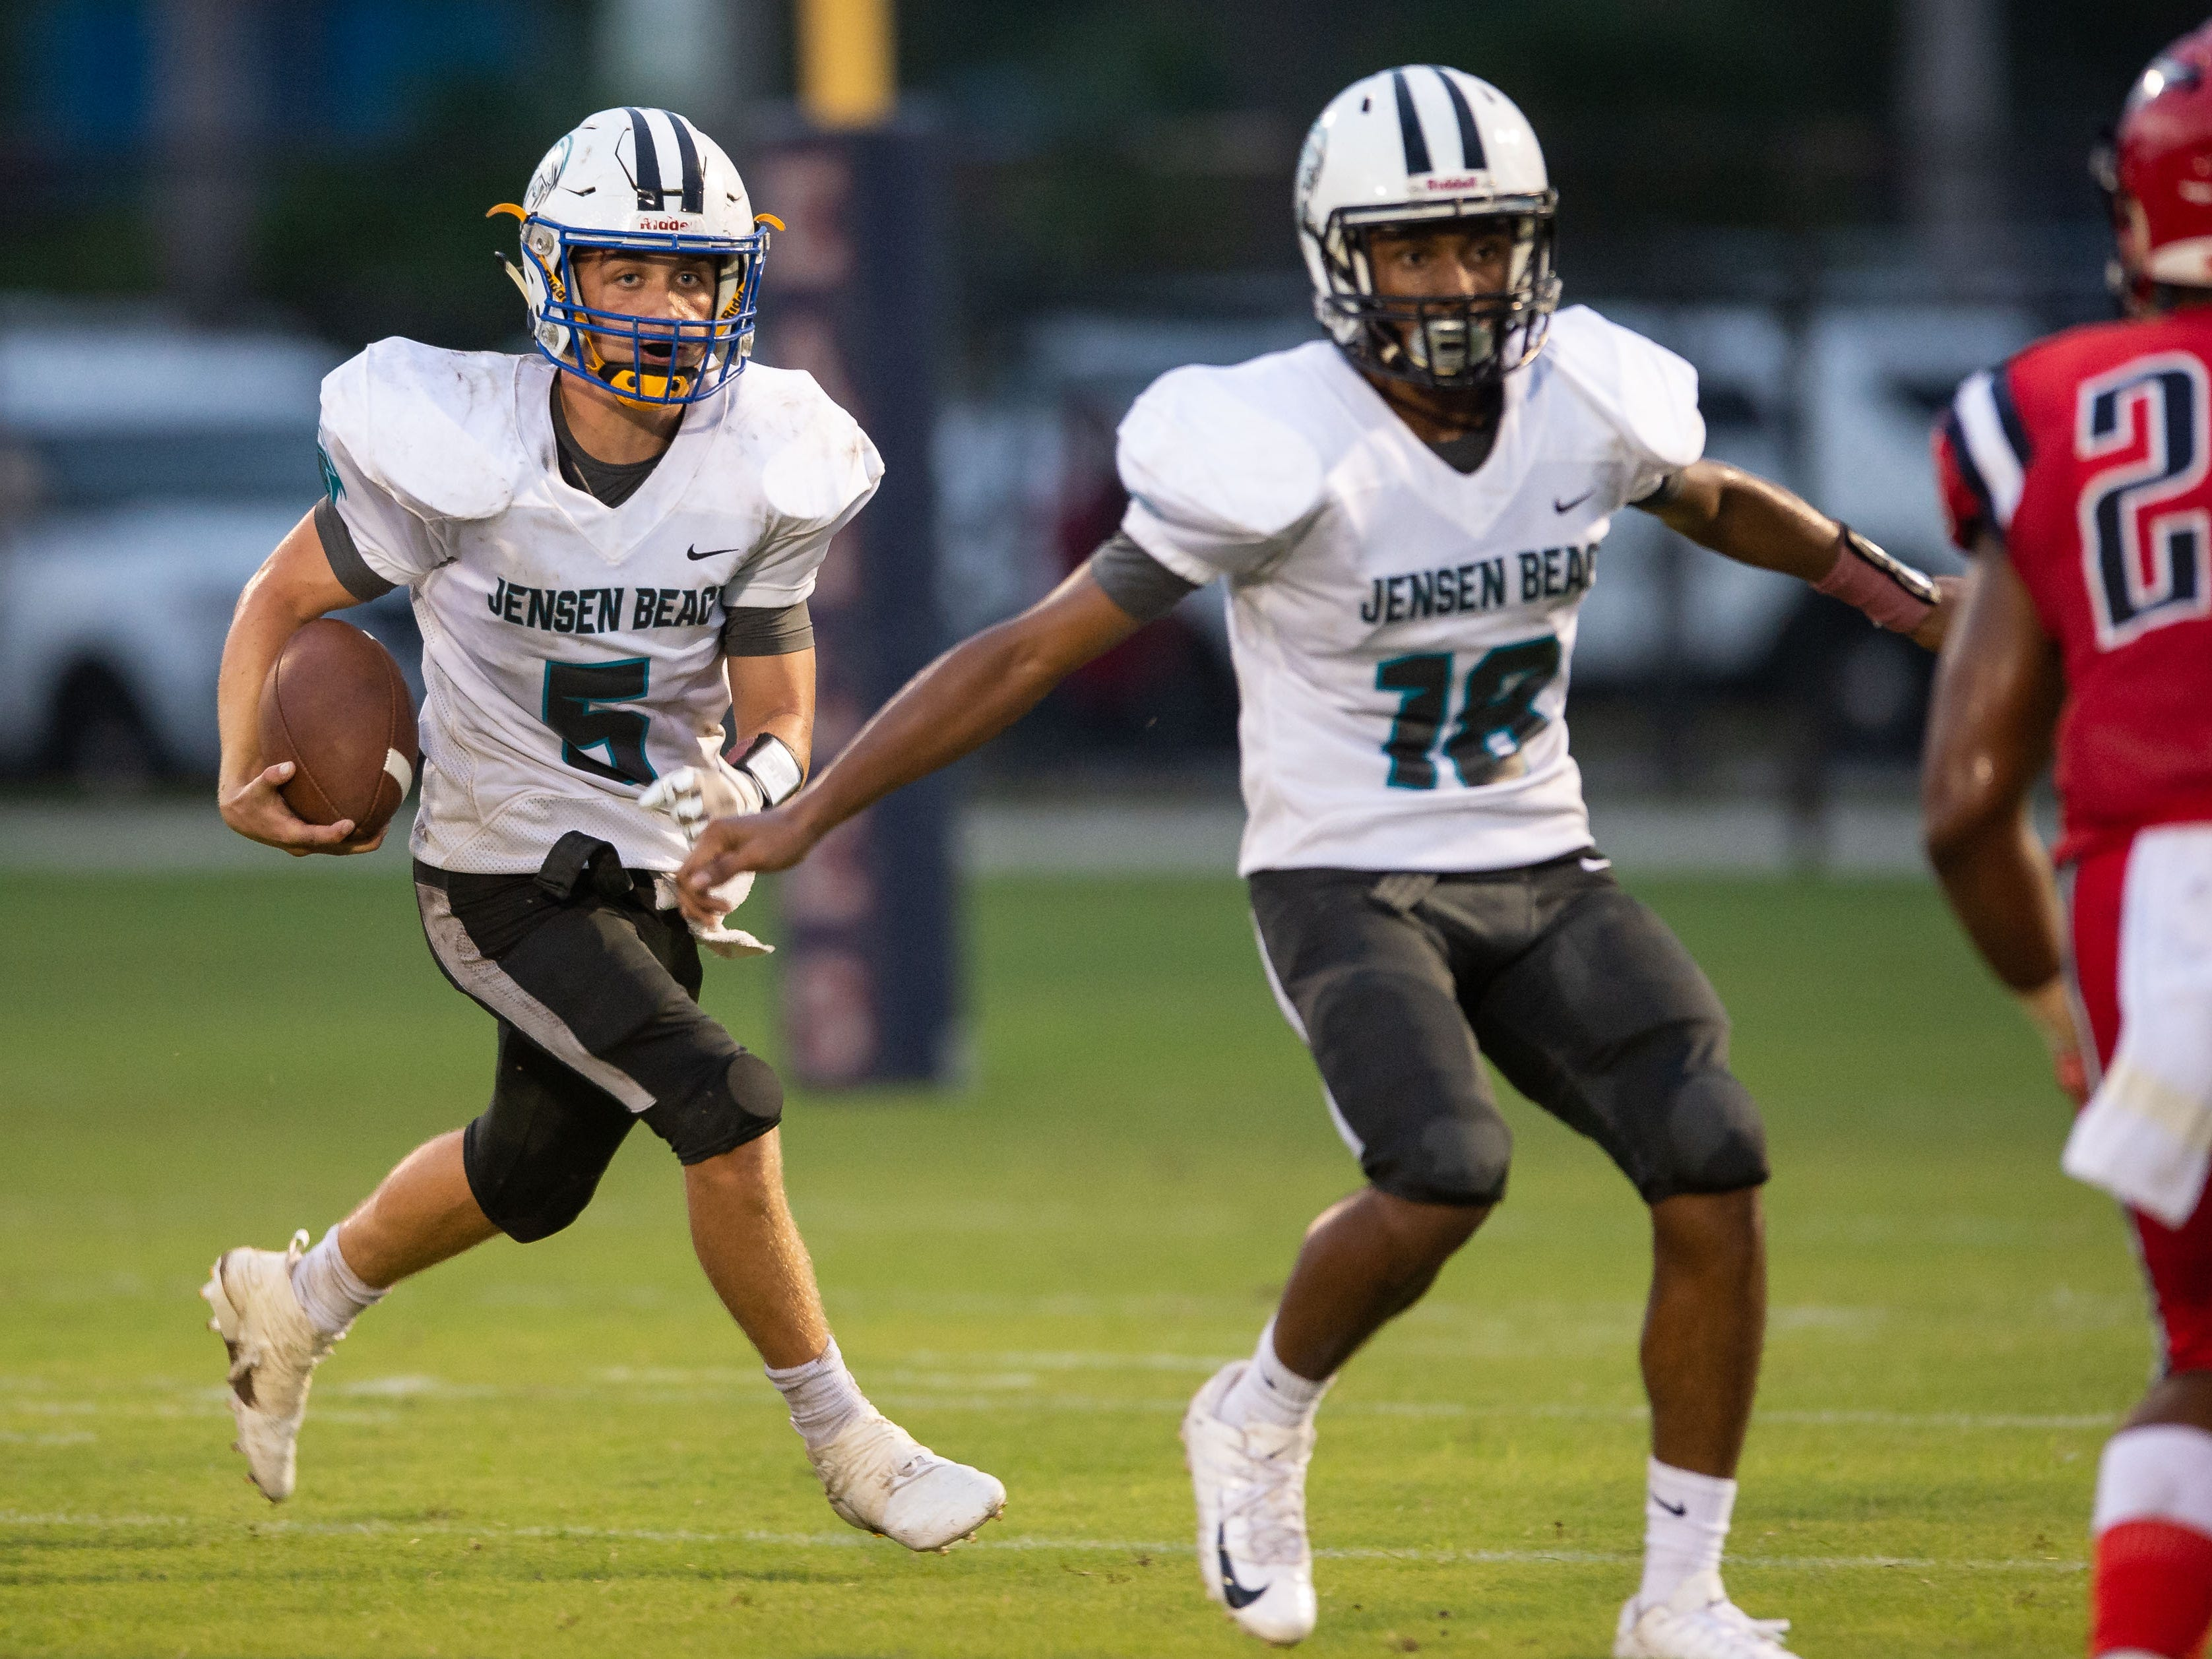 Jensen Beach quarterback Bradyn Bytheway (left) runs the ball near the end of the first half, as teammate Da'Quan Gonzales prepares to block St. Lucie West Centennial's Ja'Darius Sanders, during the high school football game Wednesday, Aug. 29, 2018, at South County Regional Stadium in Port St. Lucie.